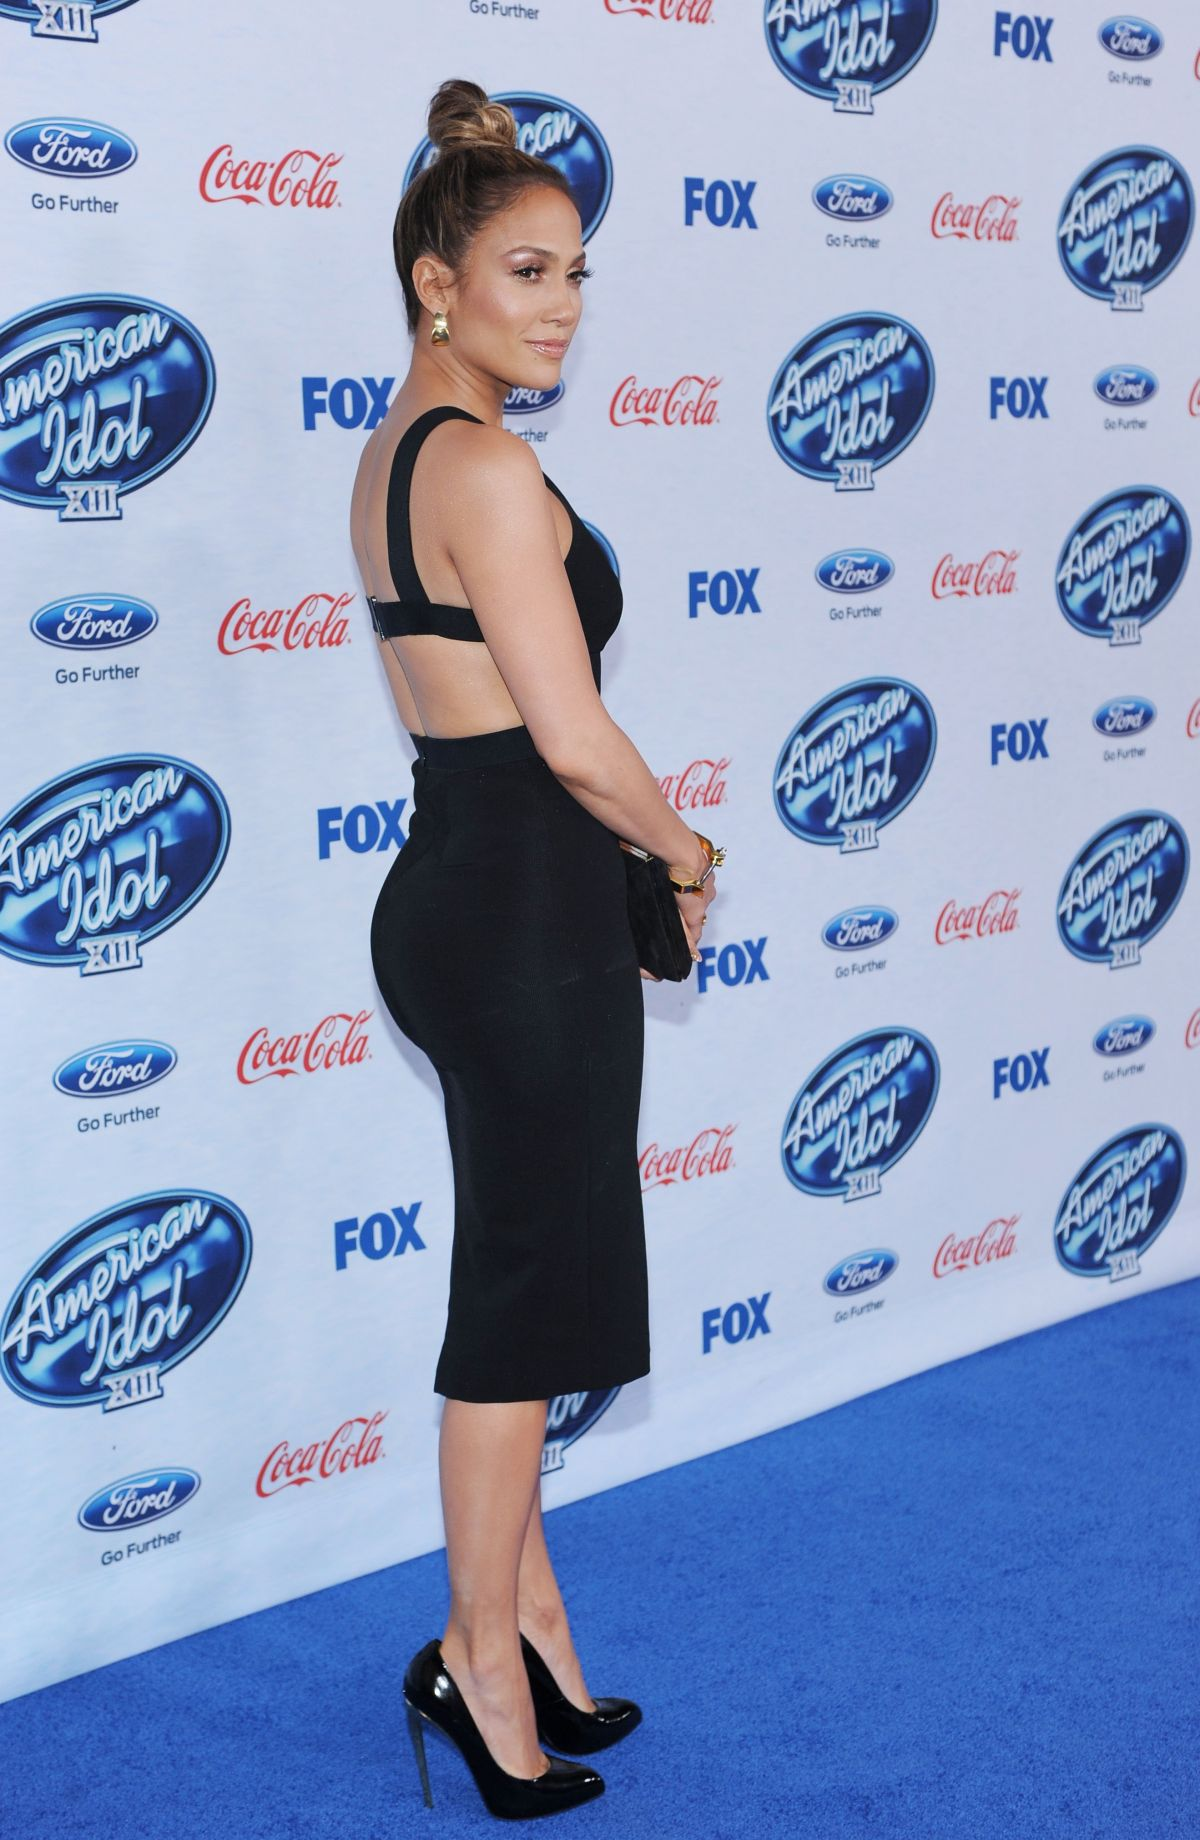 JENNIFER LOPEZ at American Idol Finalists Party in West Hollywood